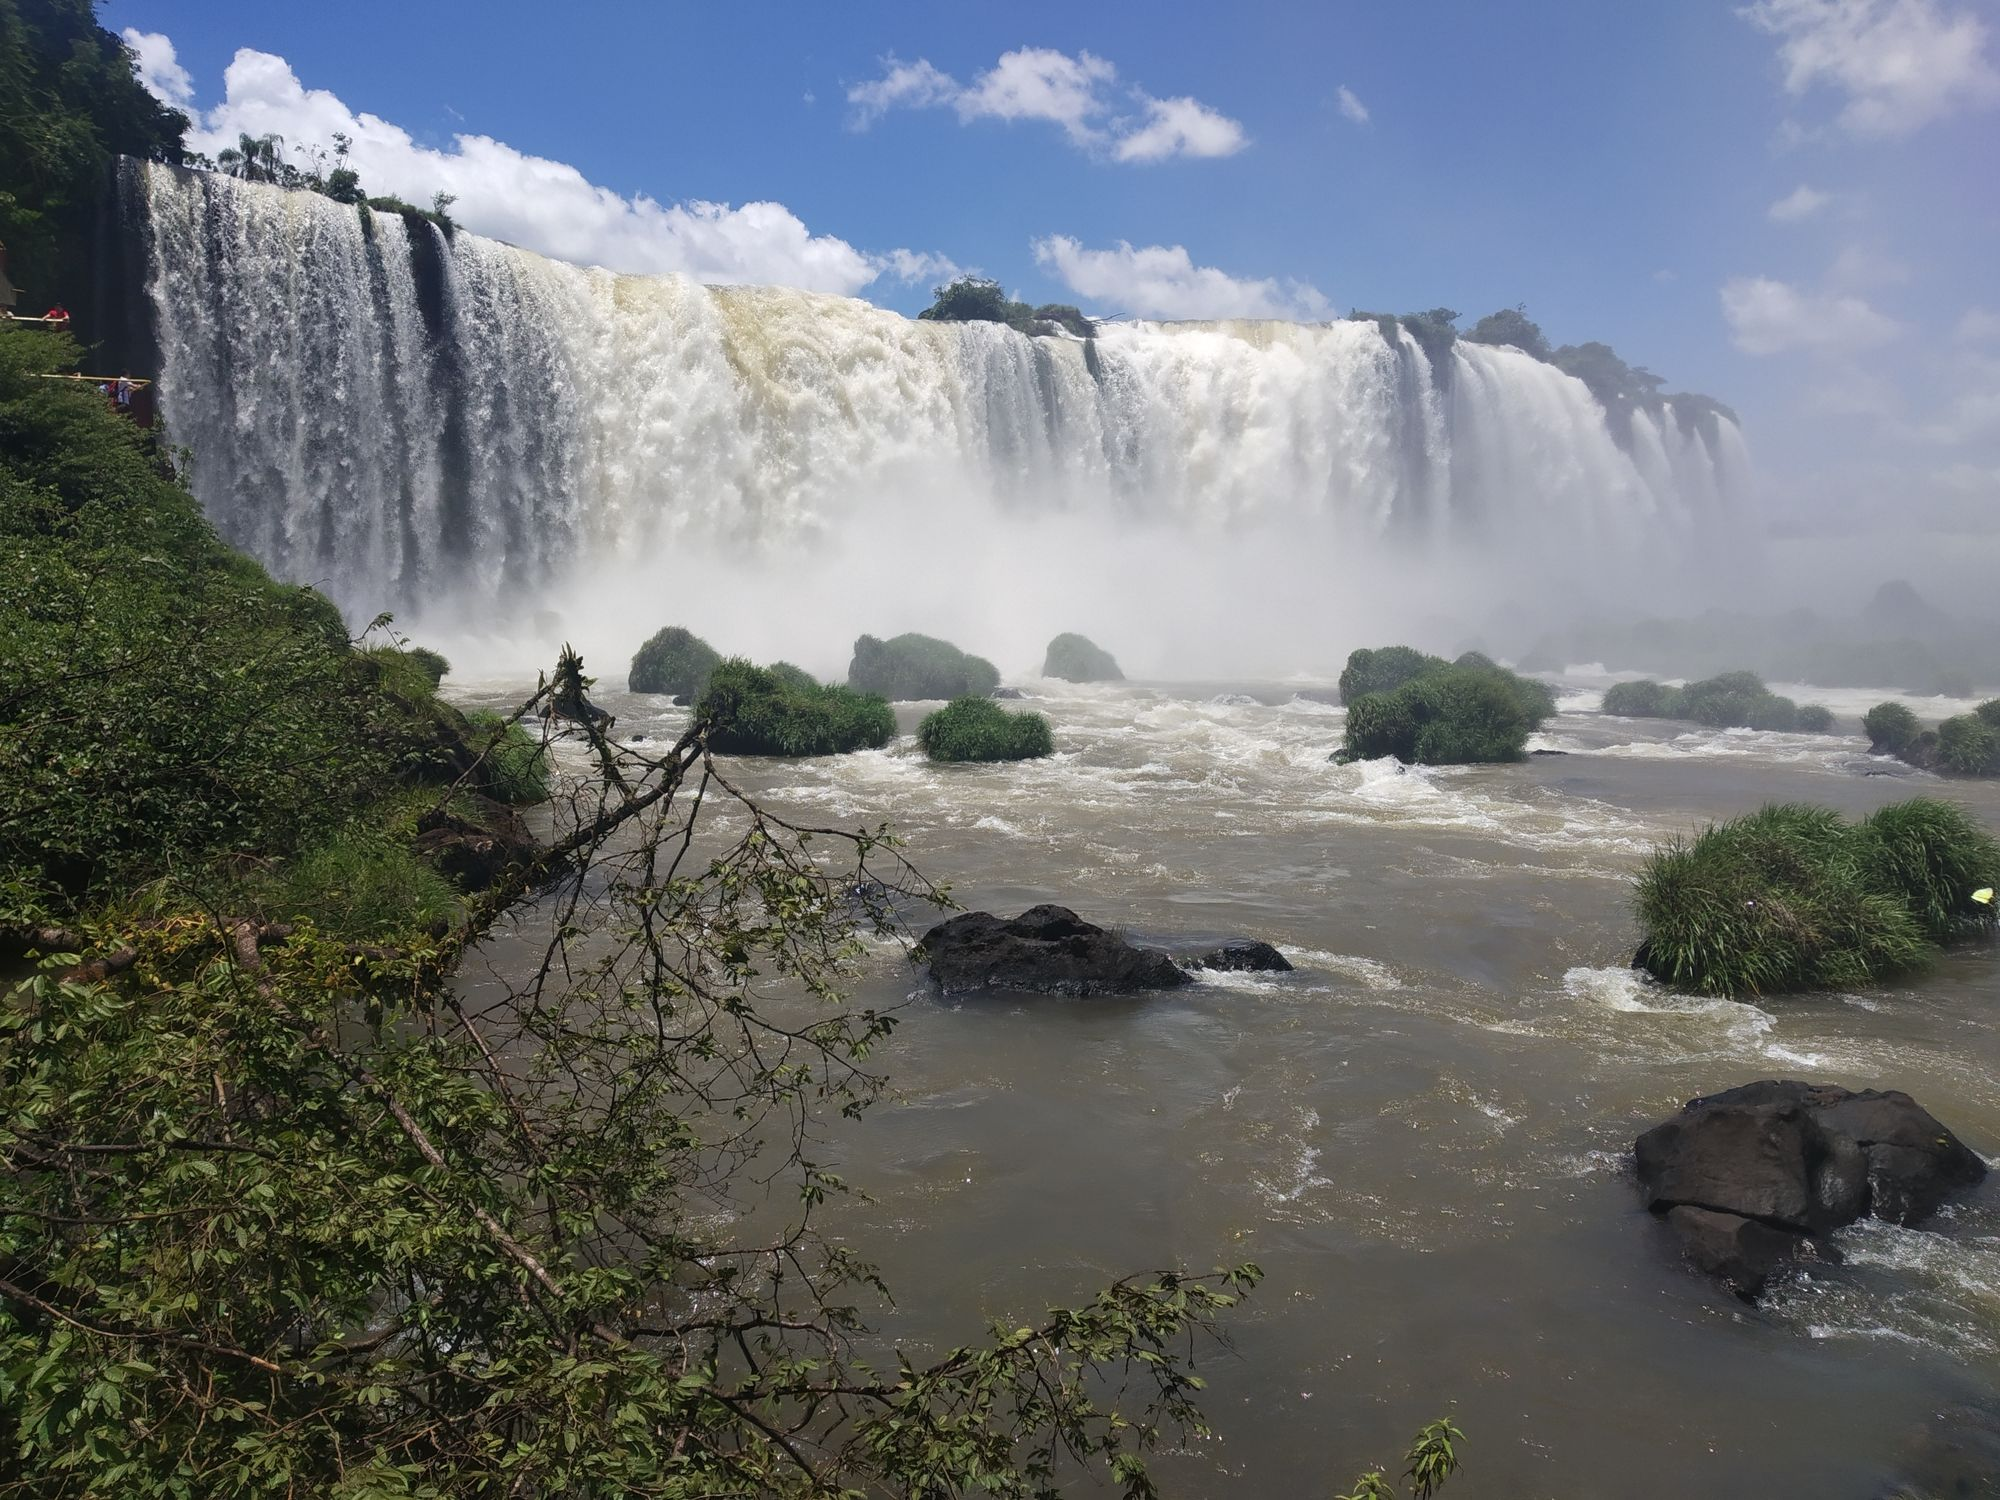 Iguazu Falls, the most epic waterfalls I've been to